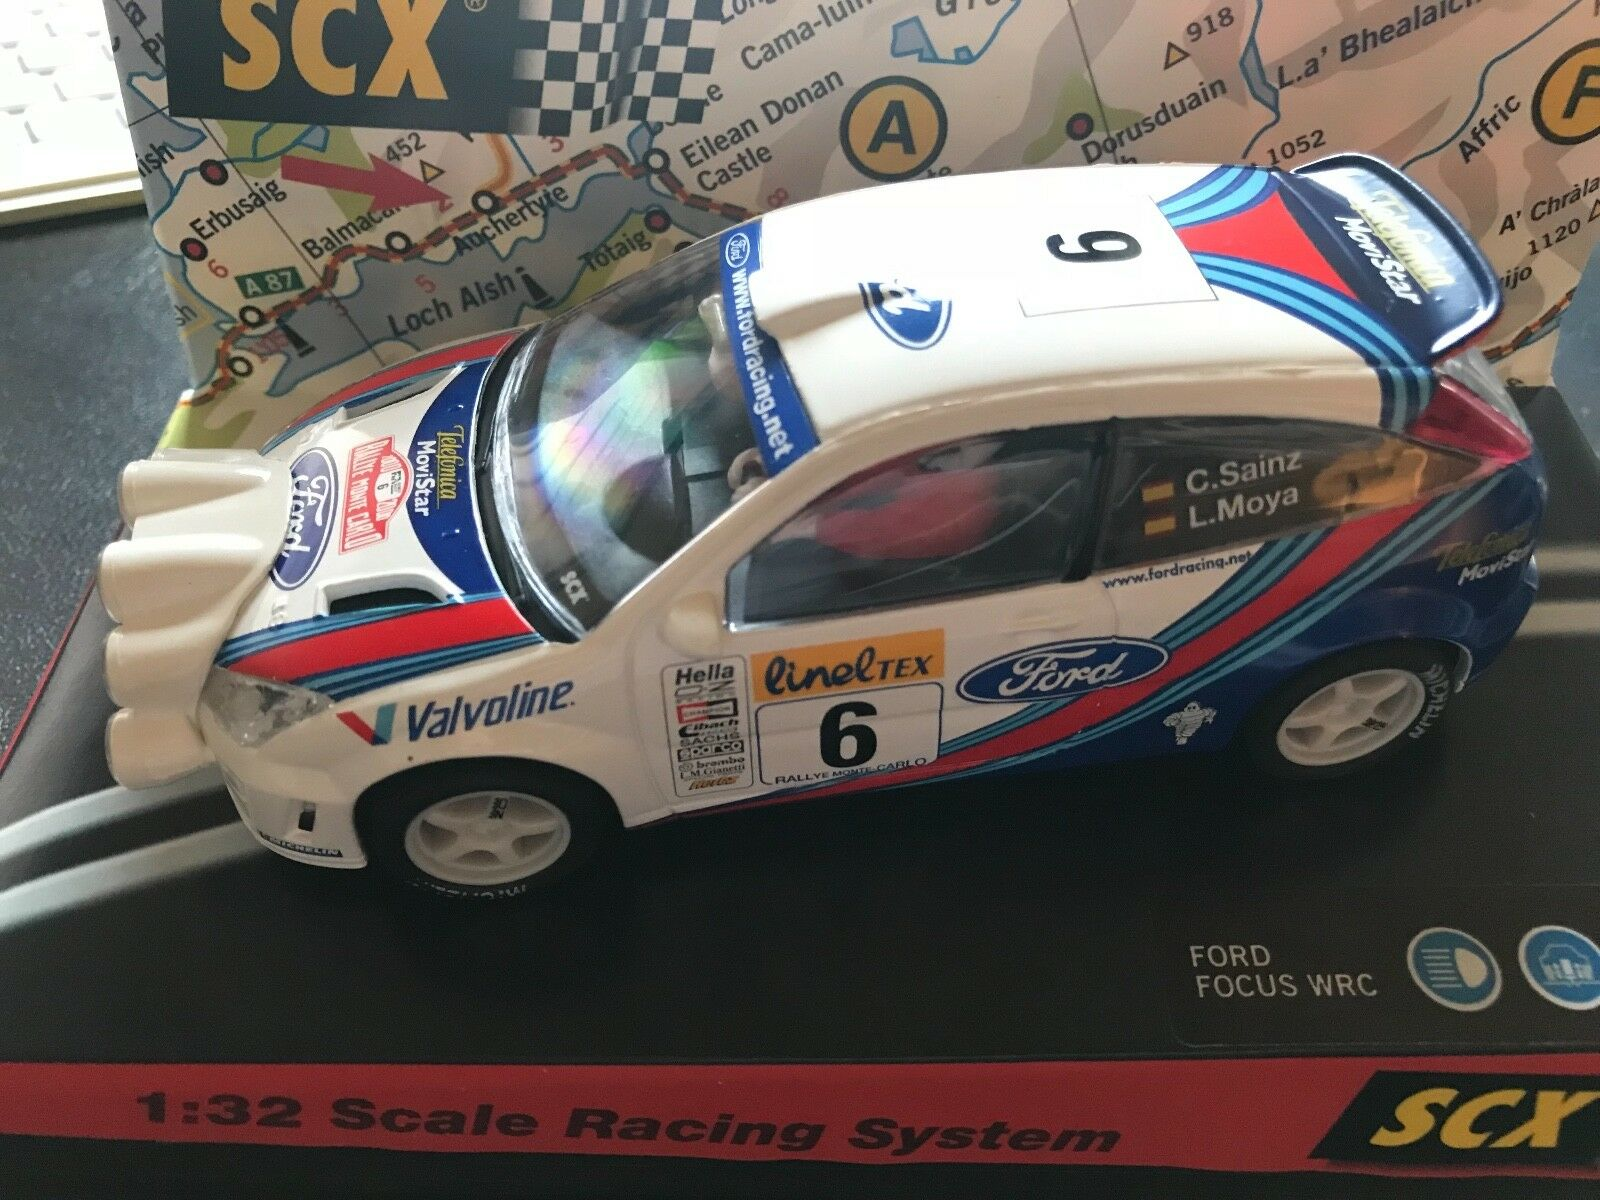 Ford Focus WRC Scalextric SCX Rally Car 1 32 Monte Carlo 2000 Carlos Sainz 60580